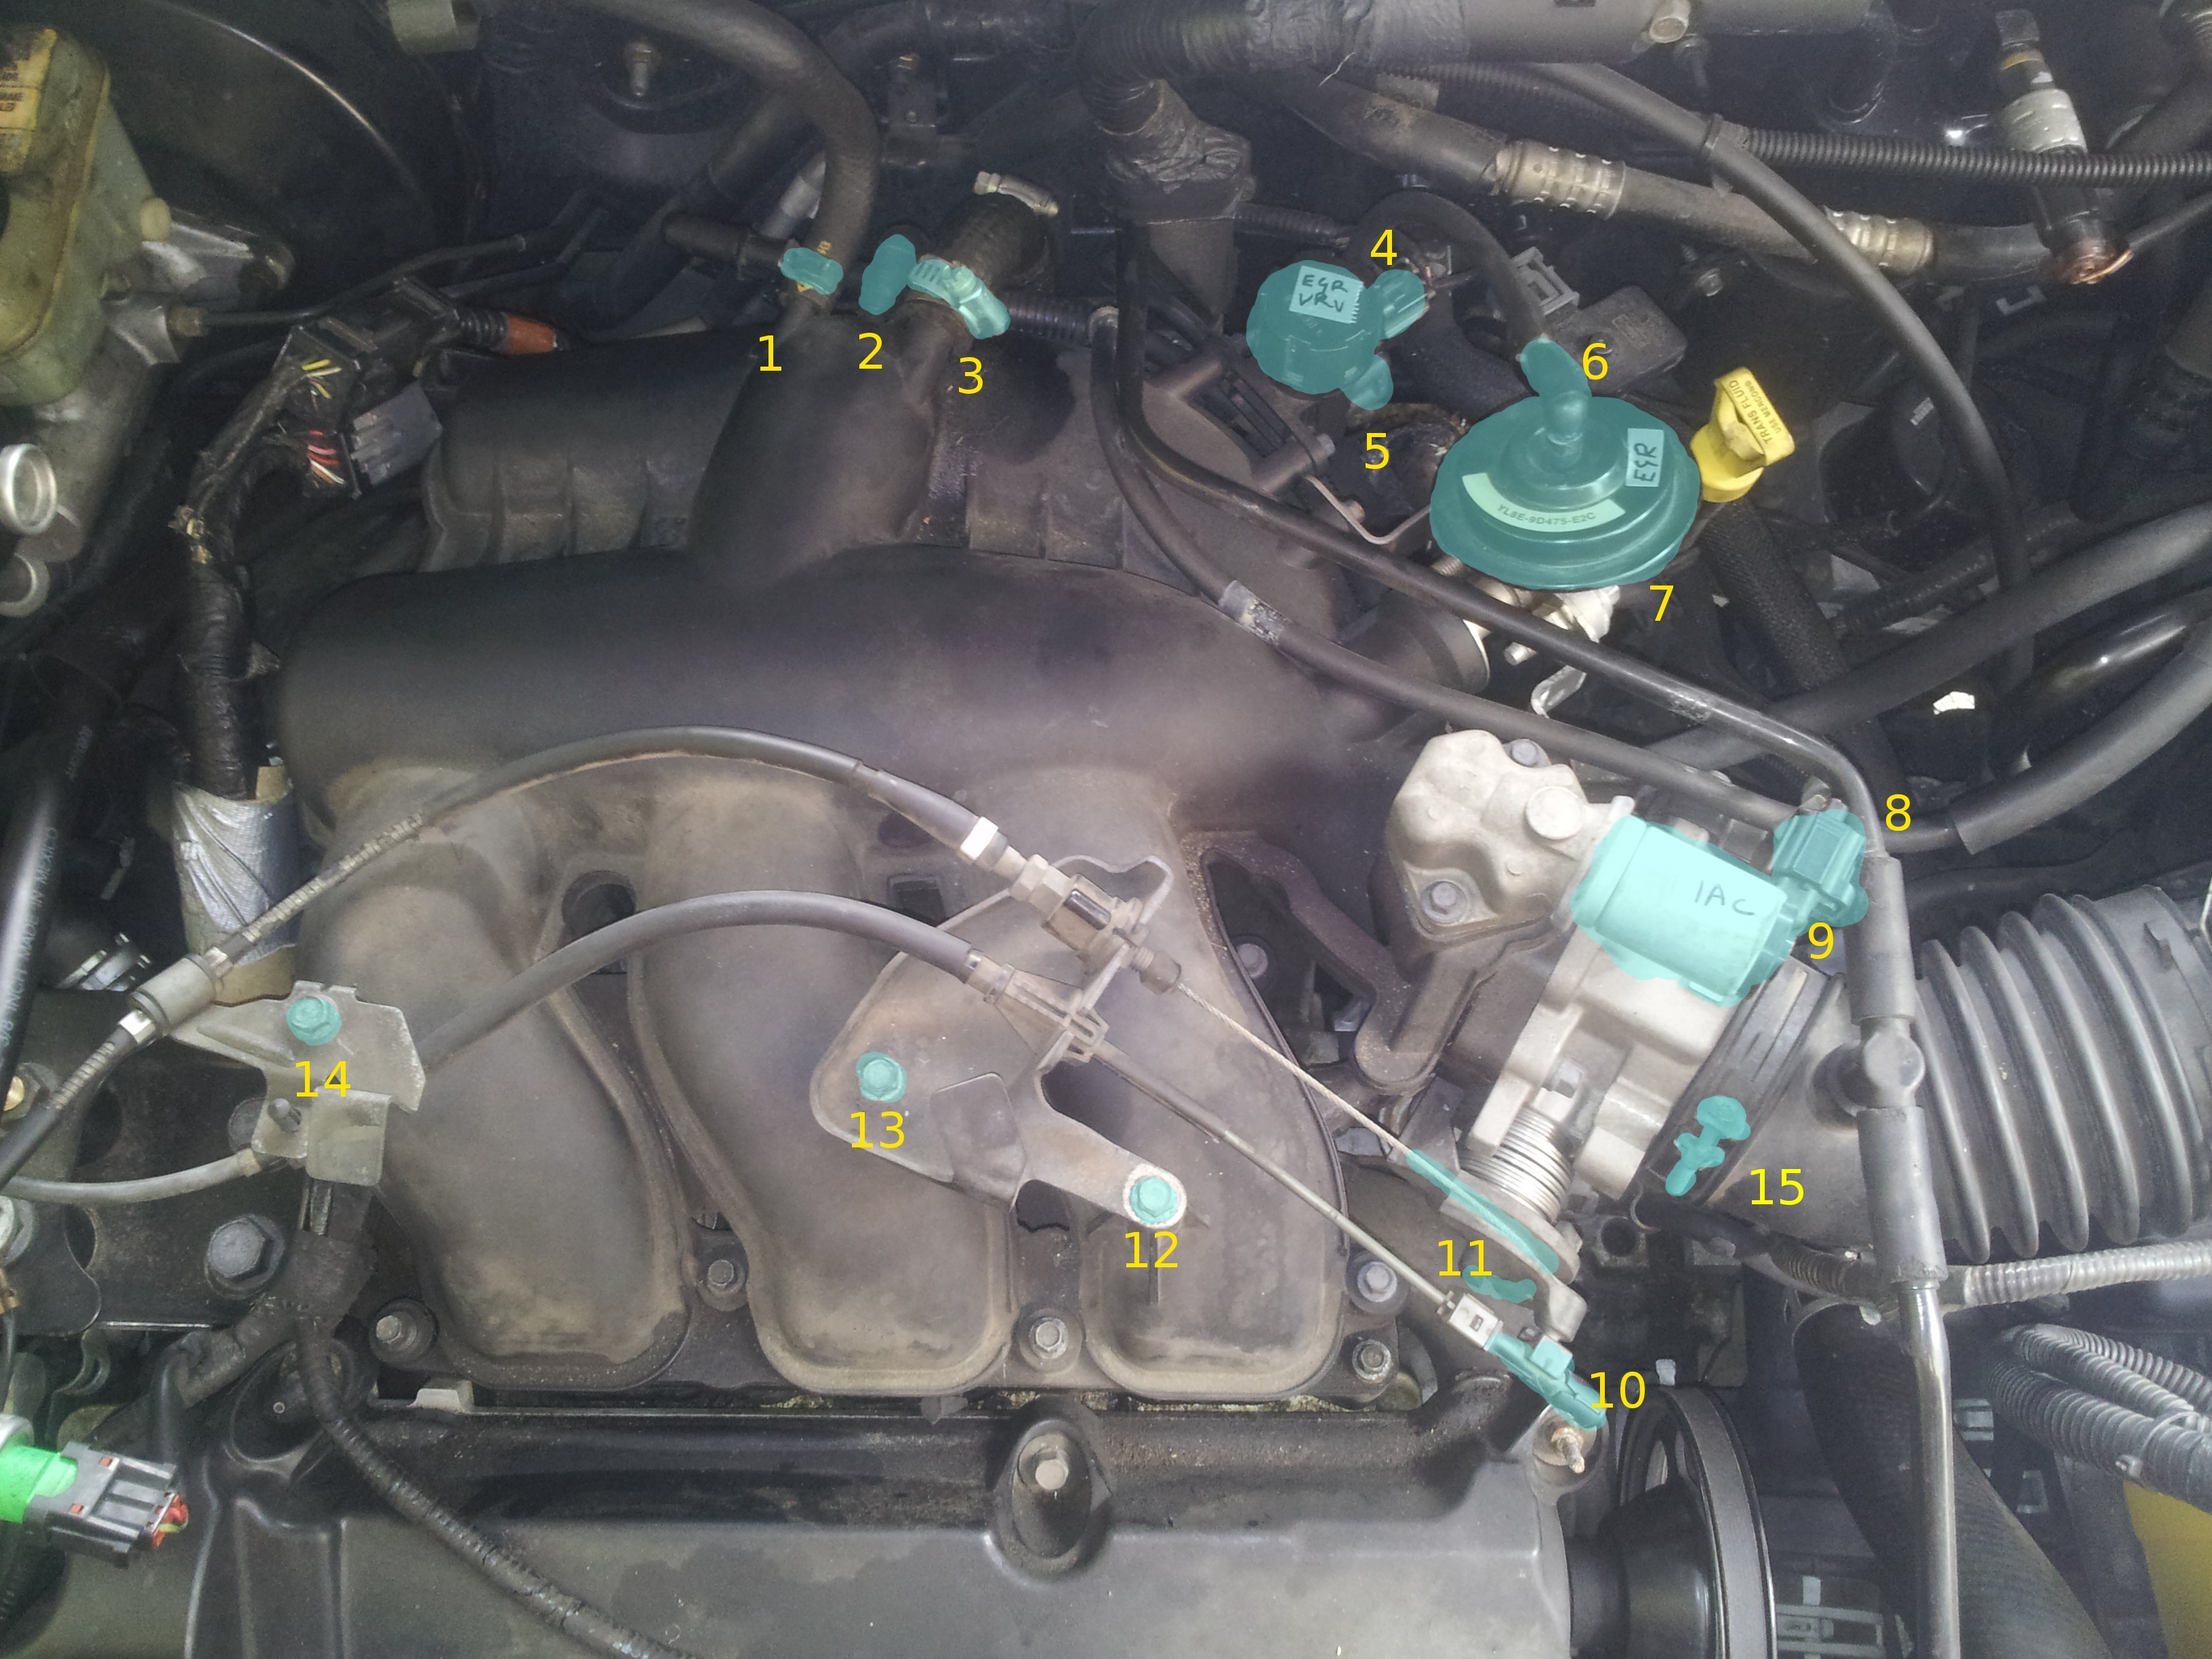 2002 Mazda Tribute Engine Diagram Ford Electronic Ignition Wiring Diagram Begeboy Wiring Diagram Source